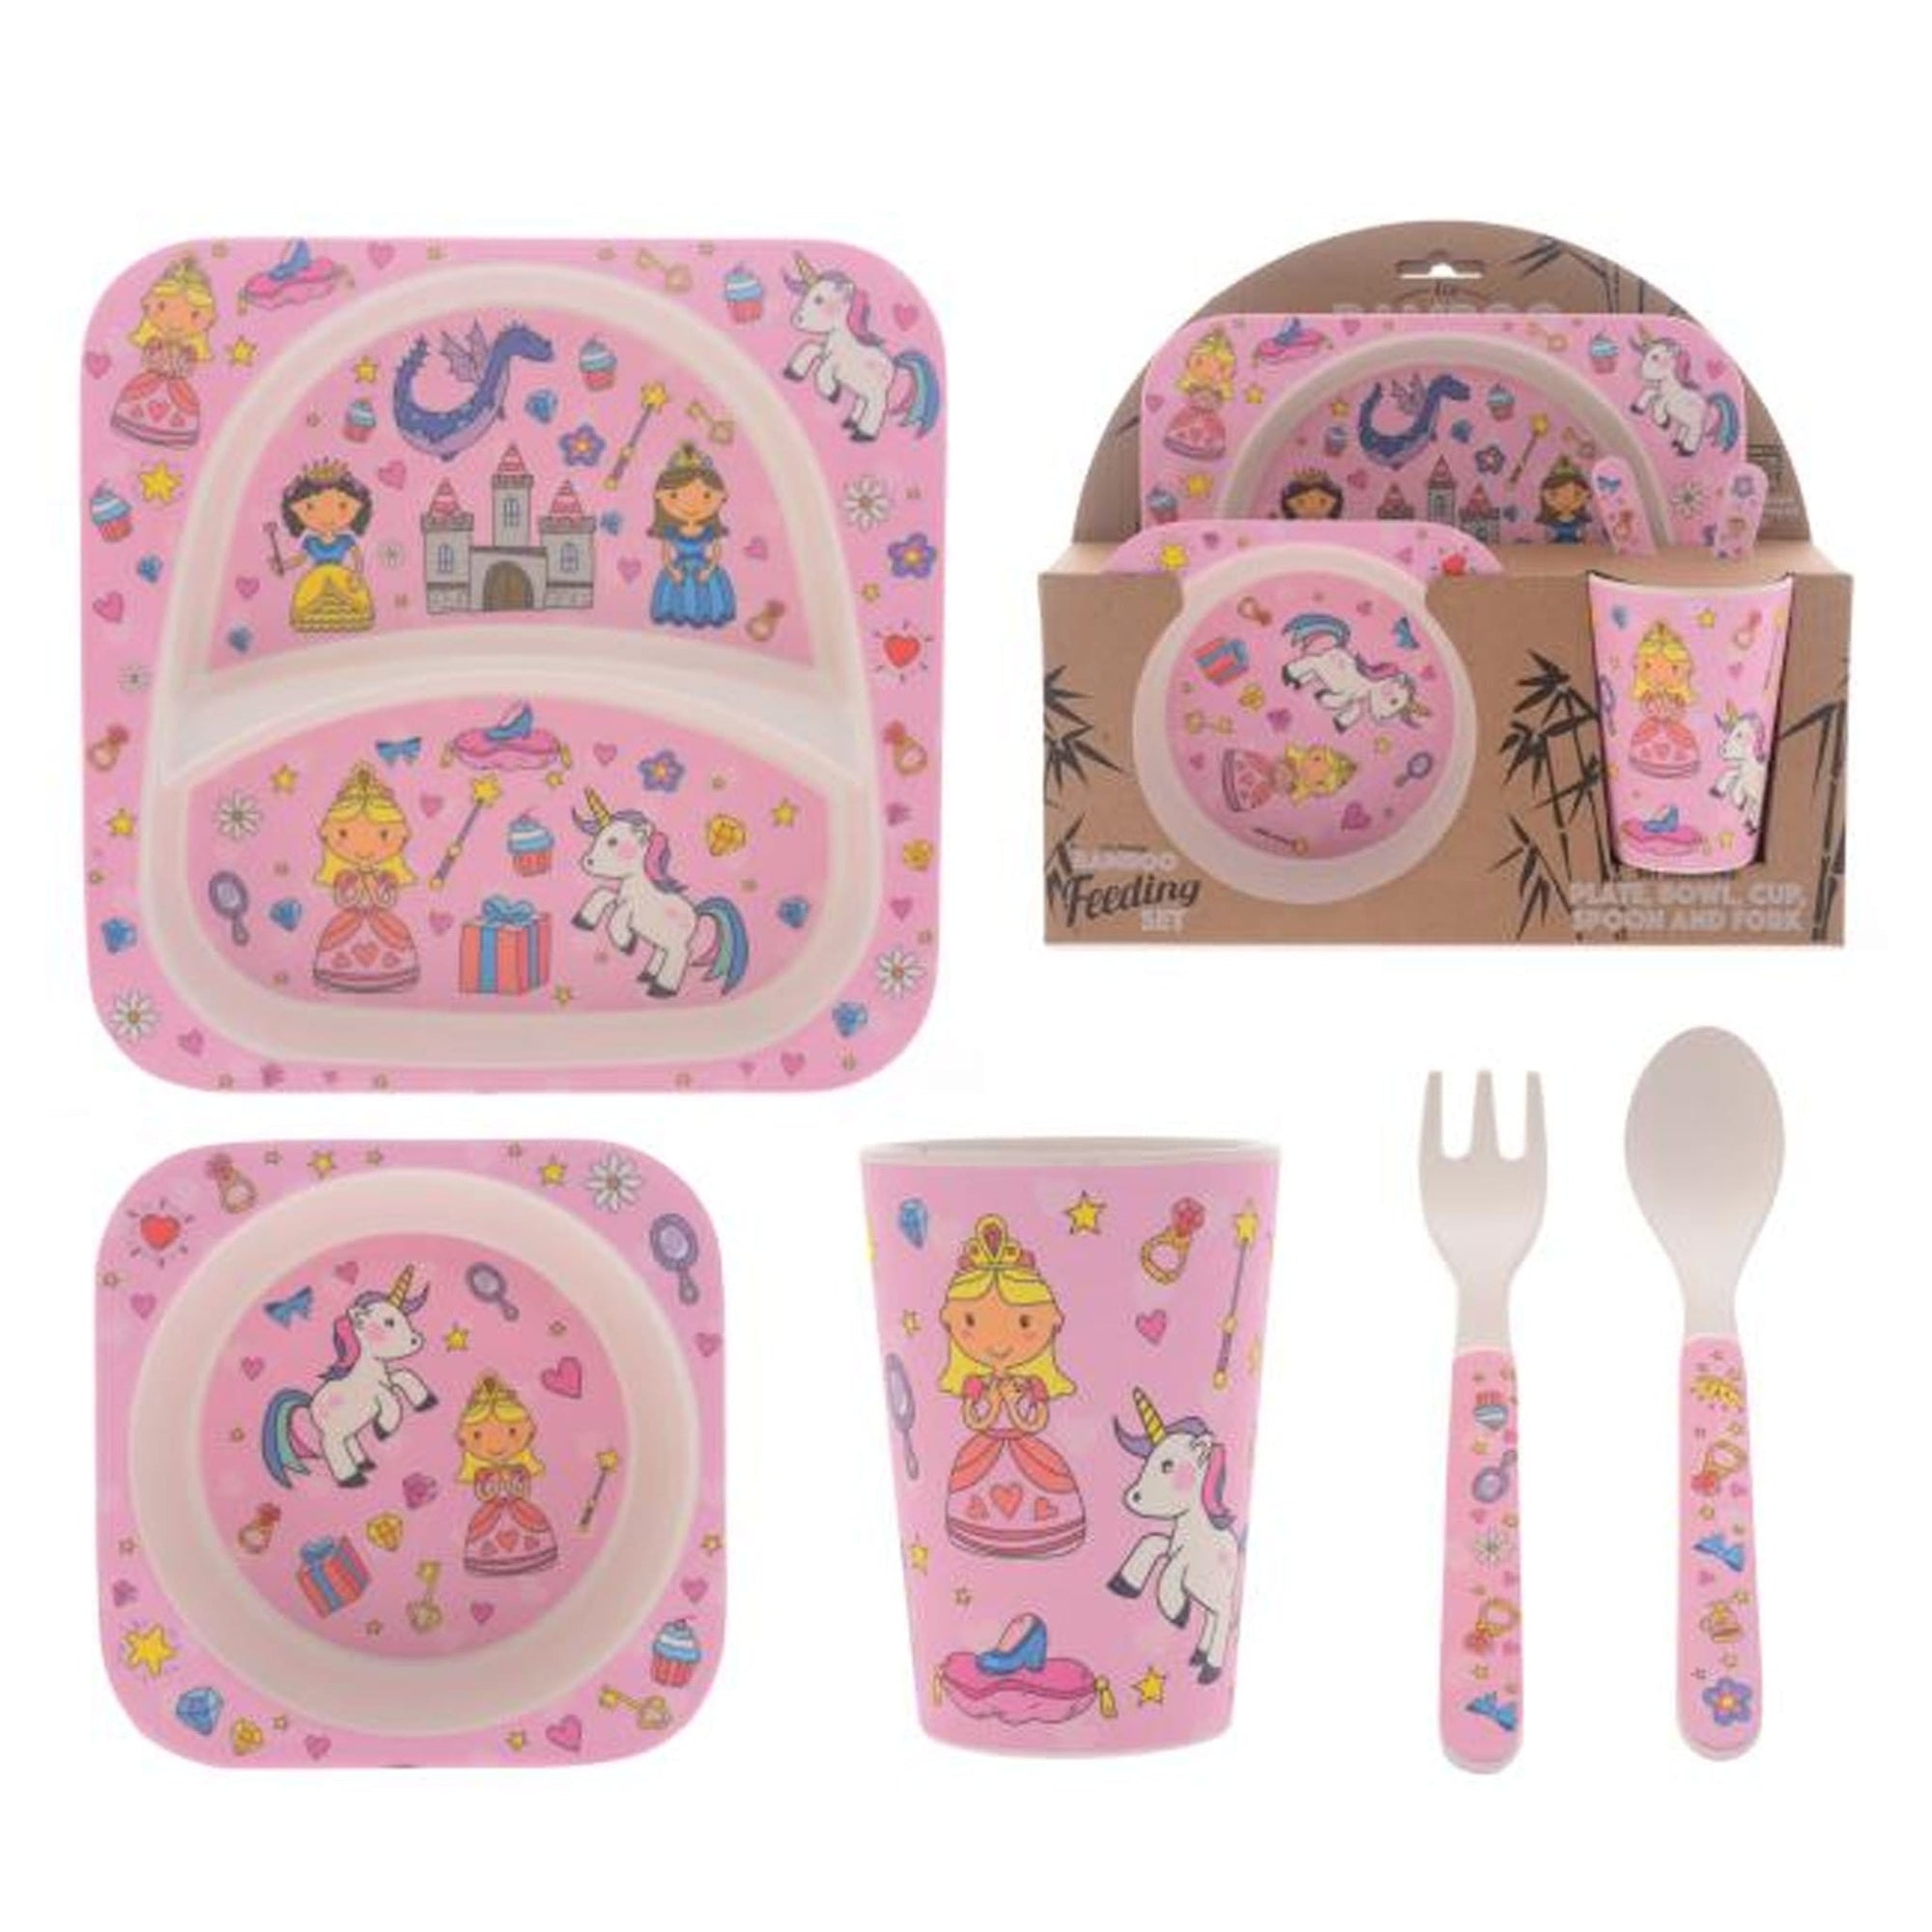 Fairytale 5 Piece Bamboo Dinig Set